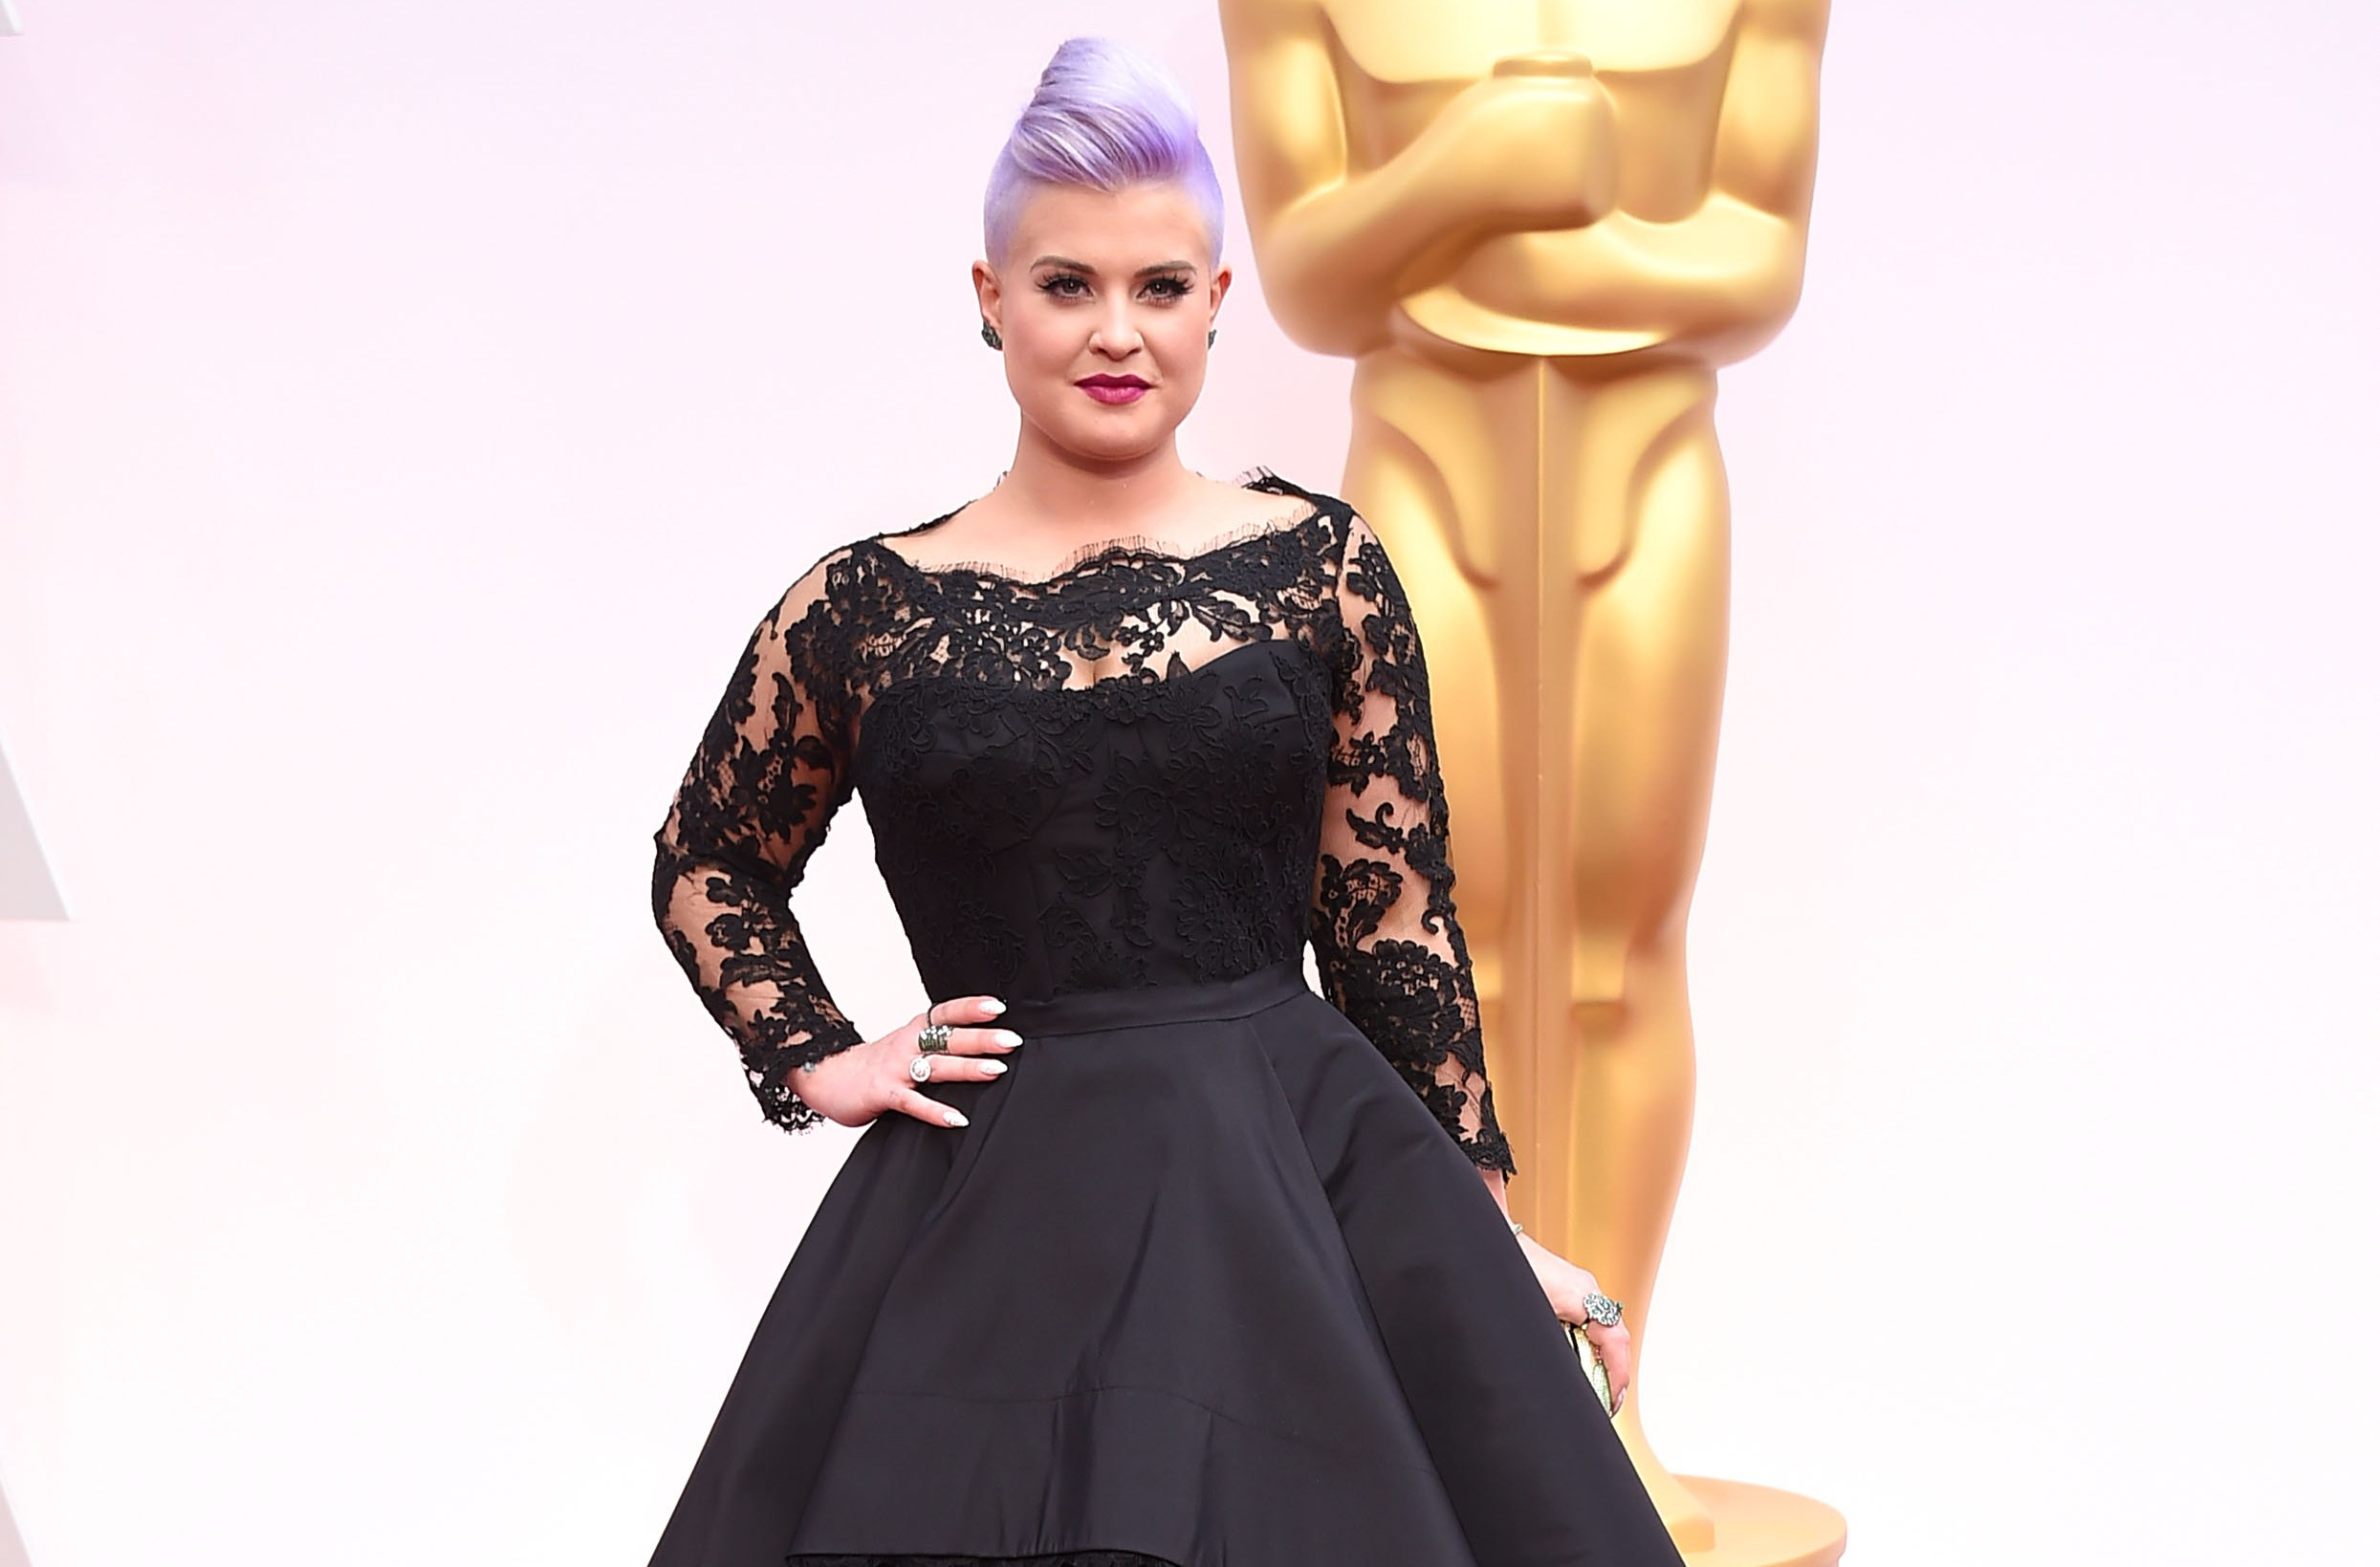 Kelly Osbourne Fired